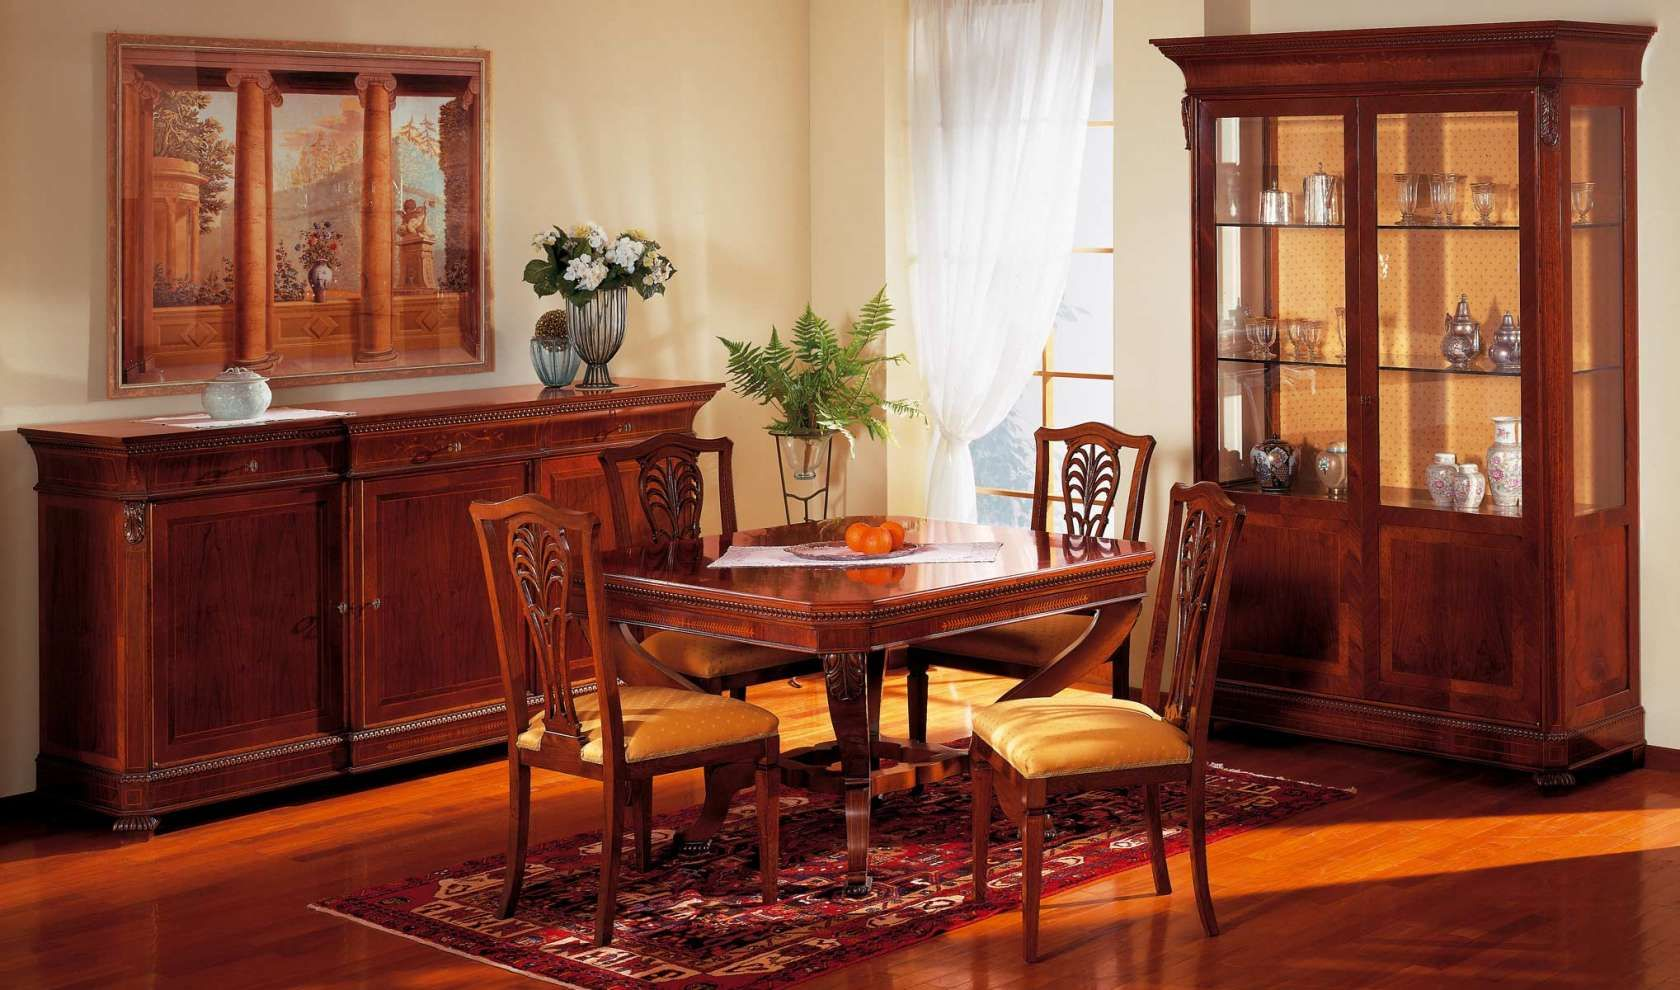 Hot And Comfortable Colors For A Furniture Collection Of A Dining Room Played On Precious Essences Soft Carvings And Luxury Dining Room Furniture Classic Furniture